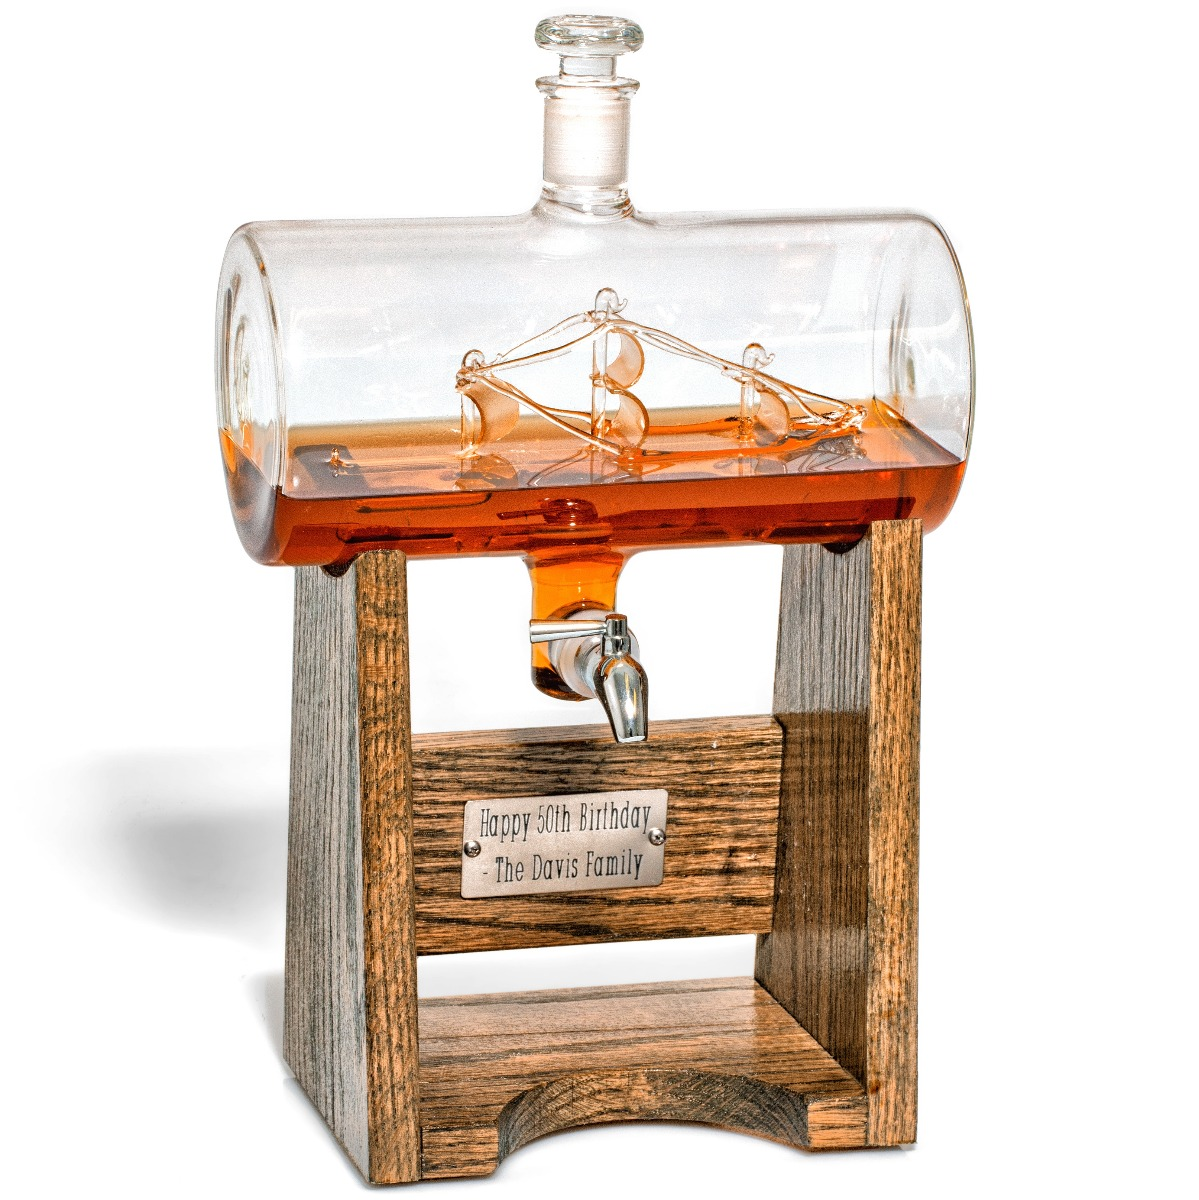 Constellation1797 Decanter, a customized whiskey decanter with glass ship